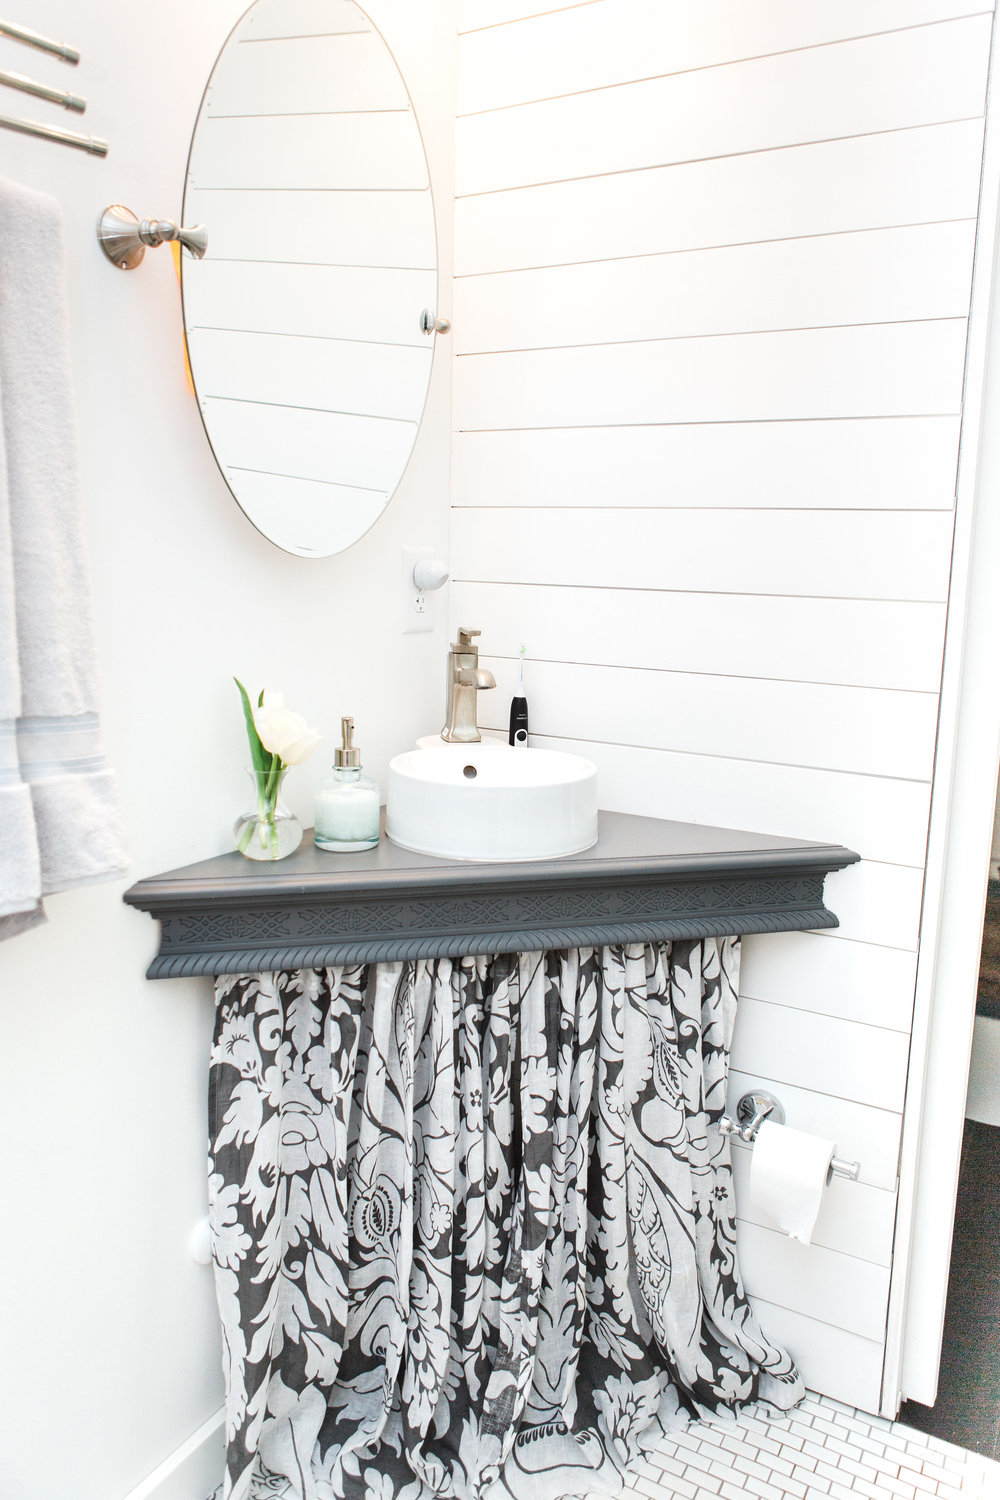 Houzz Upstairs Bath Vanity.jpg